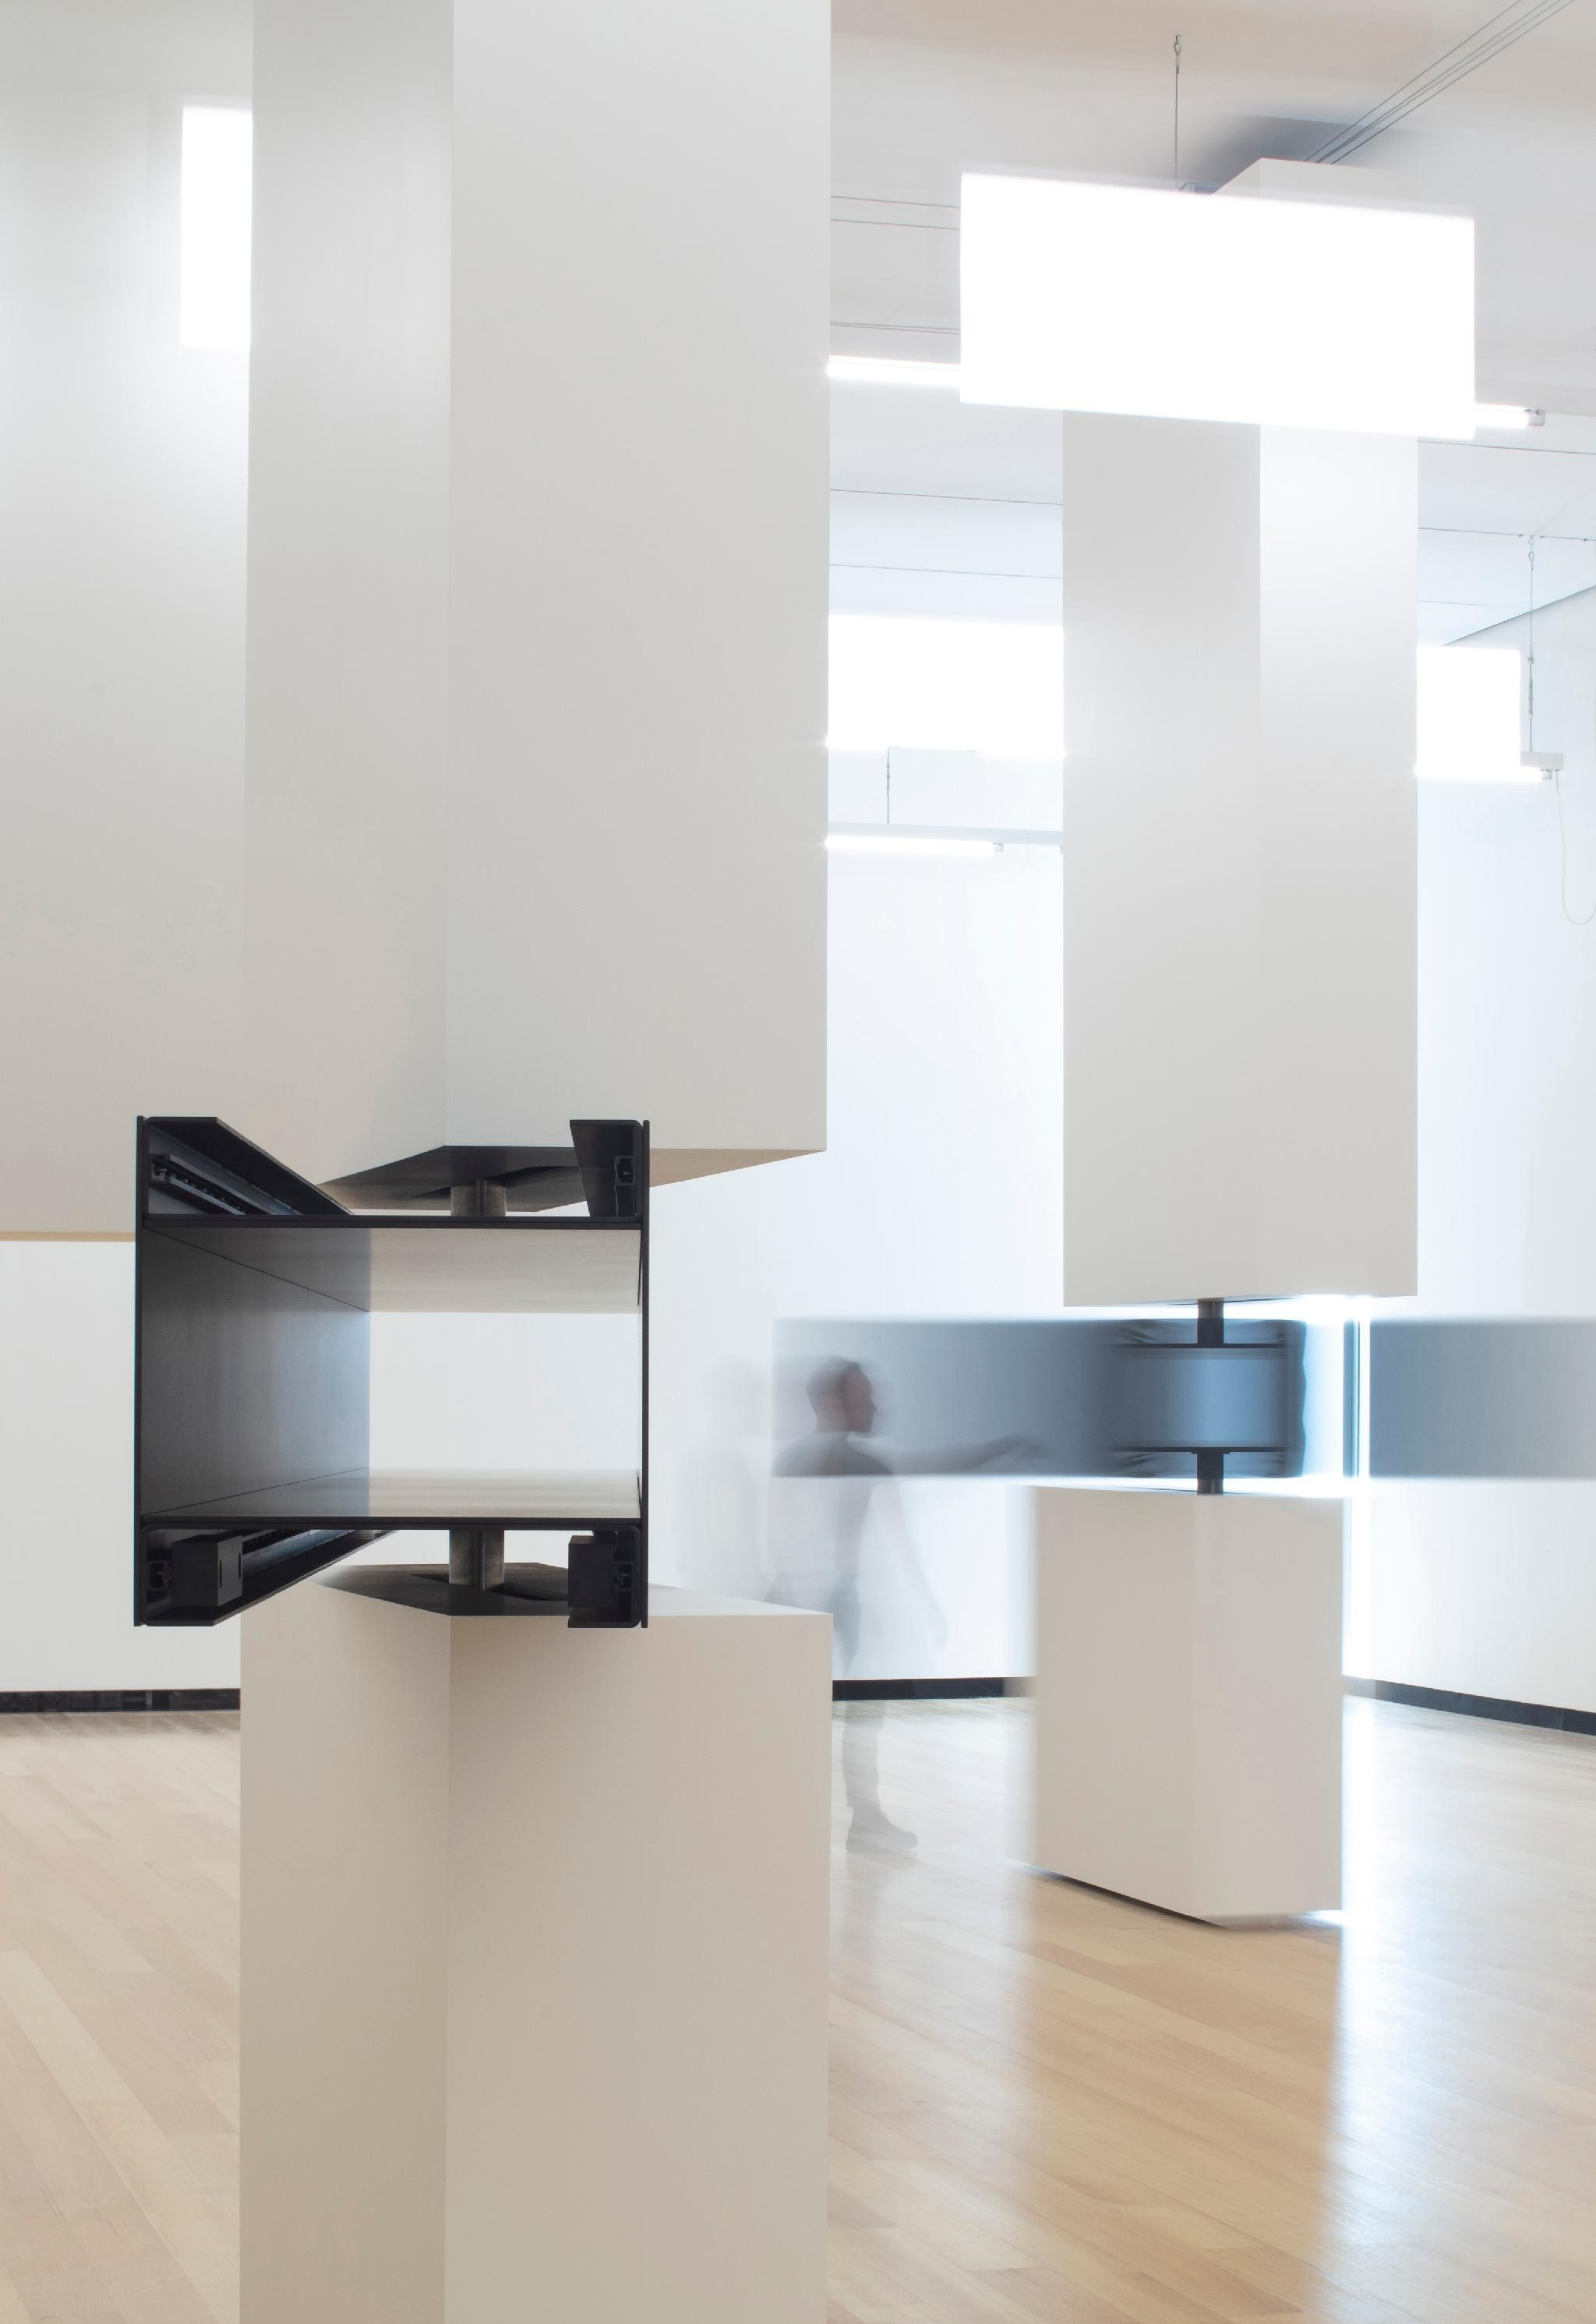 Sarah Oppenheimer: aluminum, steel, timing belts and existing architecture.